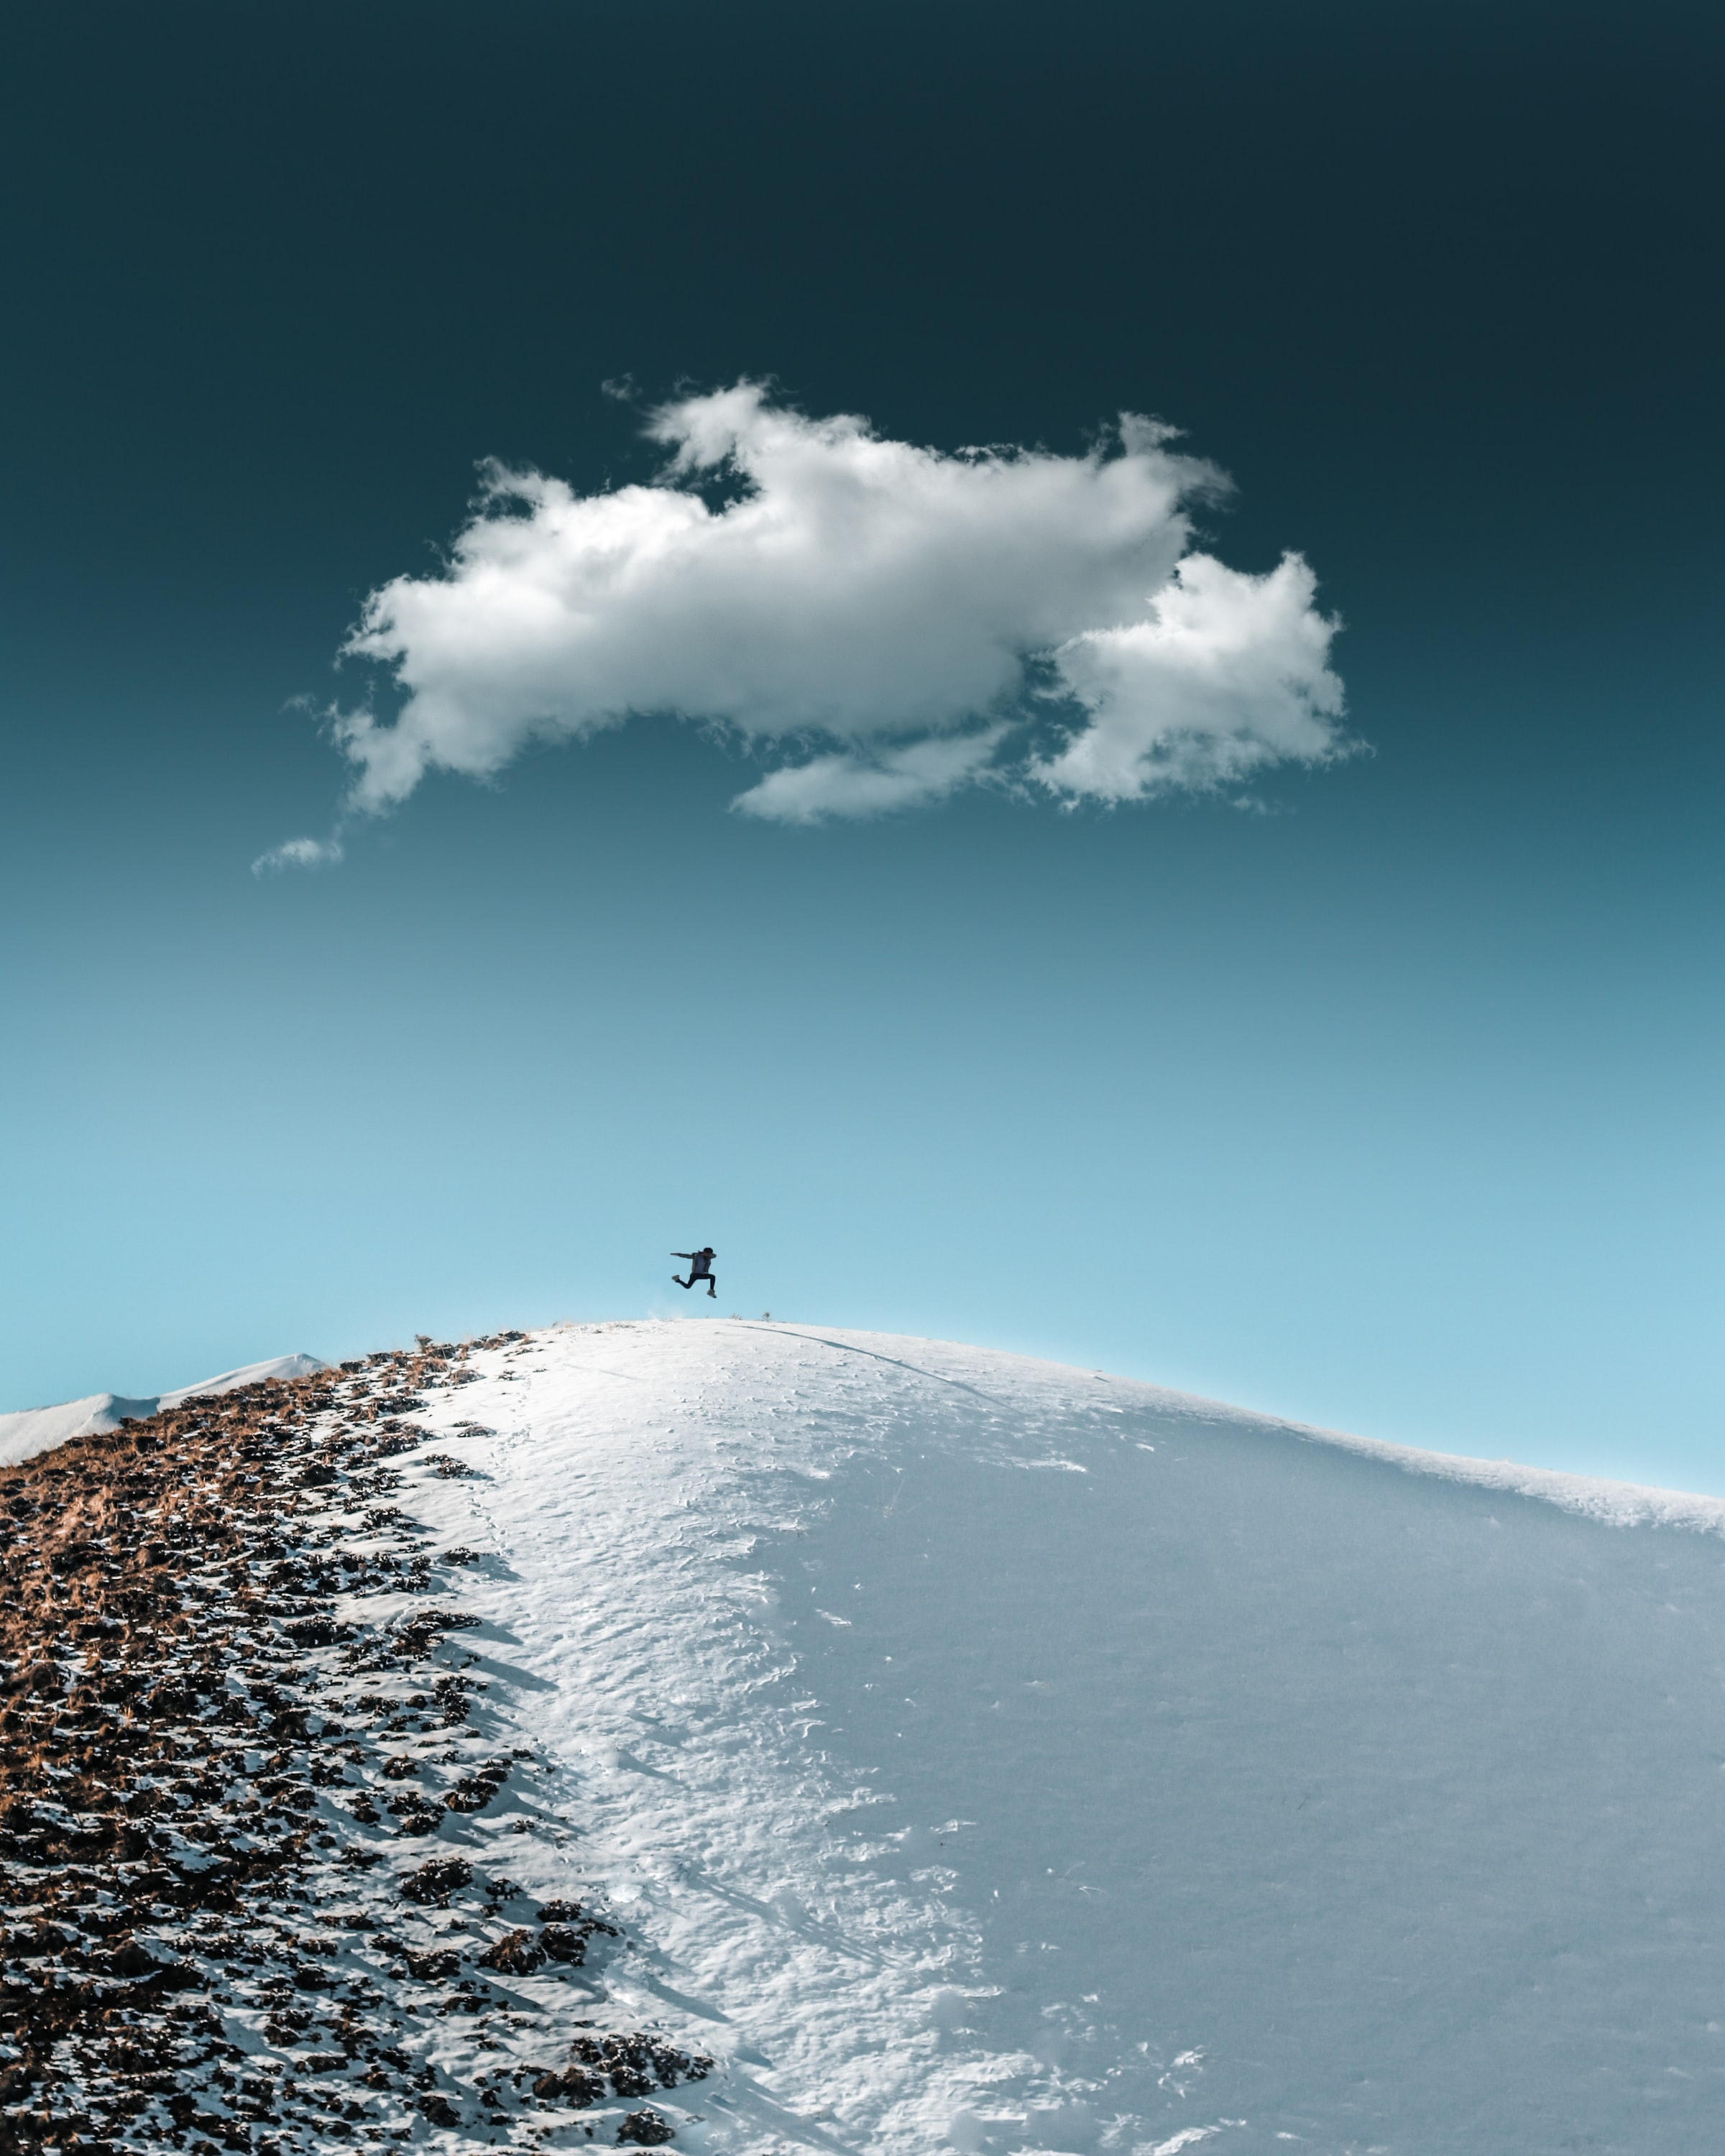 149504 download wallpaper Miscellanea, Miscellaneous, Human, Person, Bounce, Jump, Hill, Snow, Sky screensavers and pictures for free